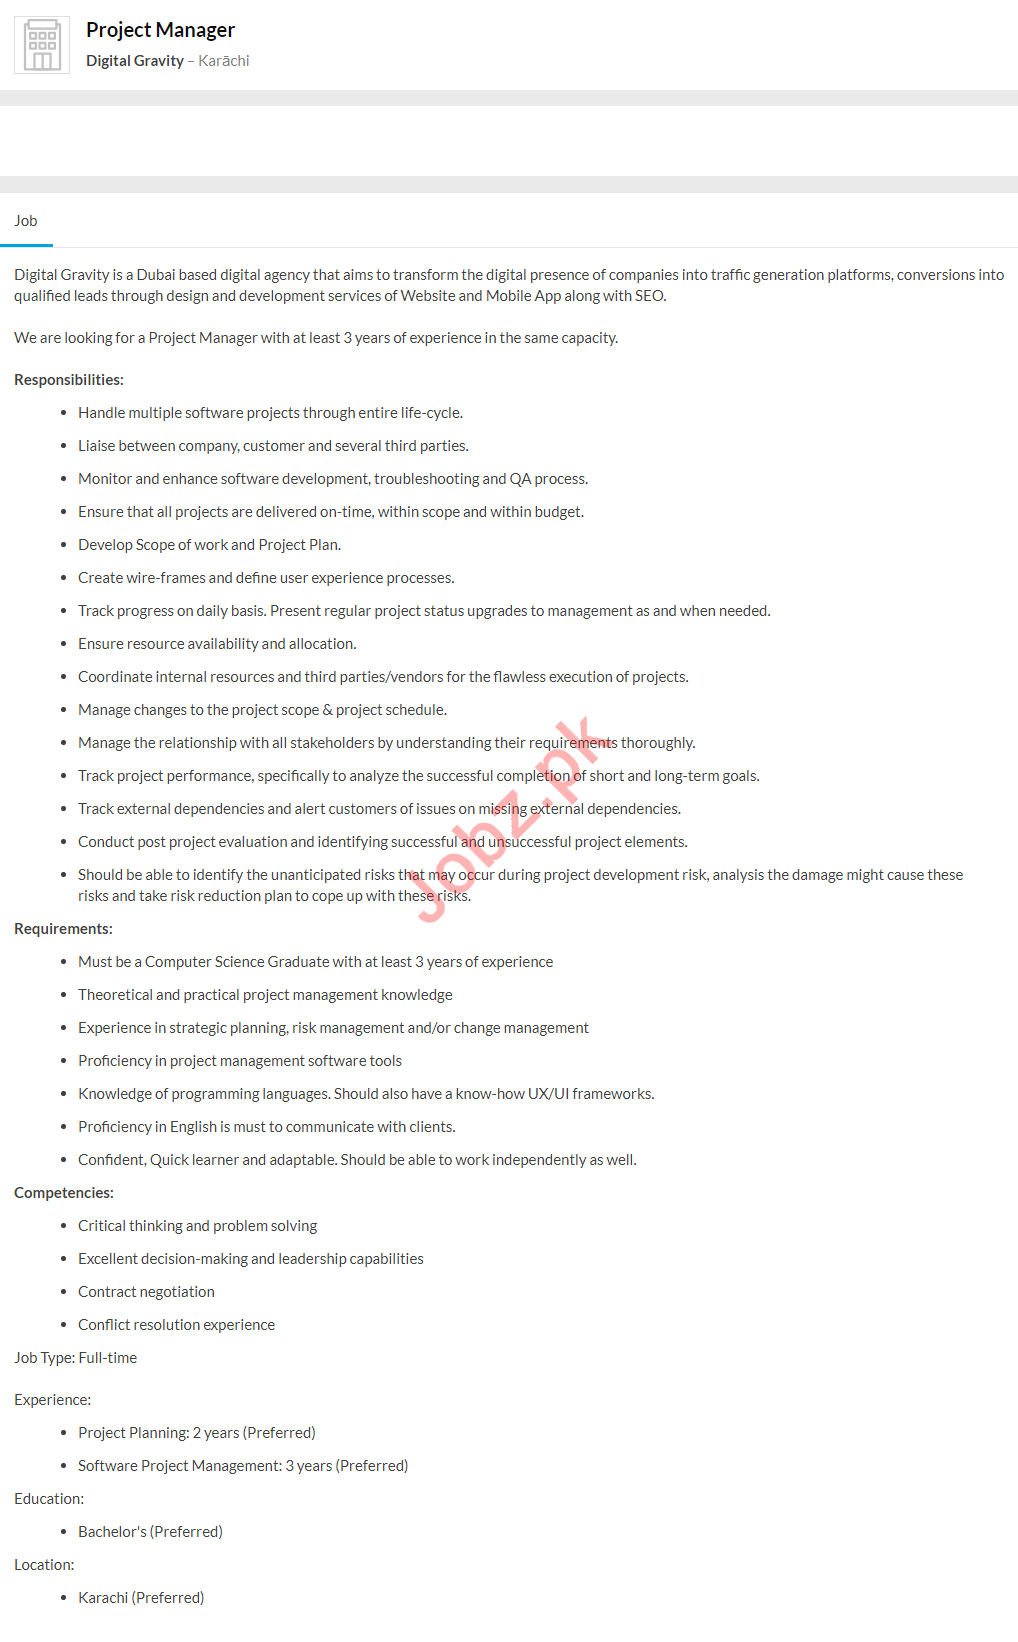 Digital Gravity Karachi Jobs 2020 for Project Manager